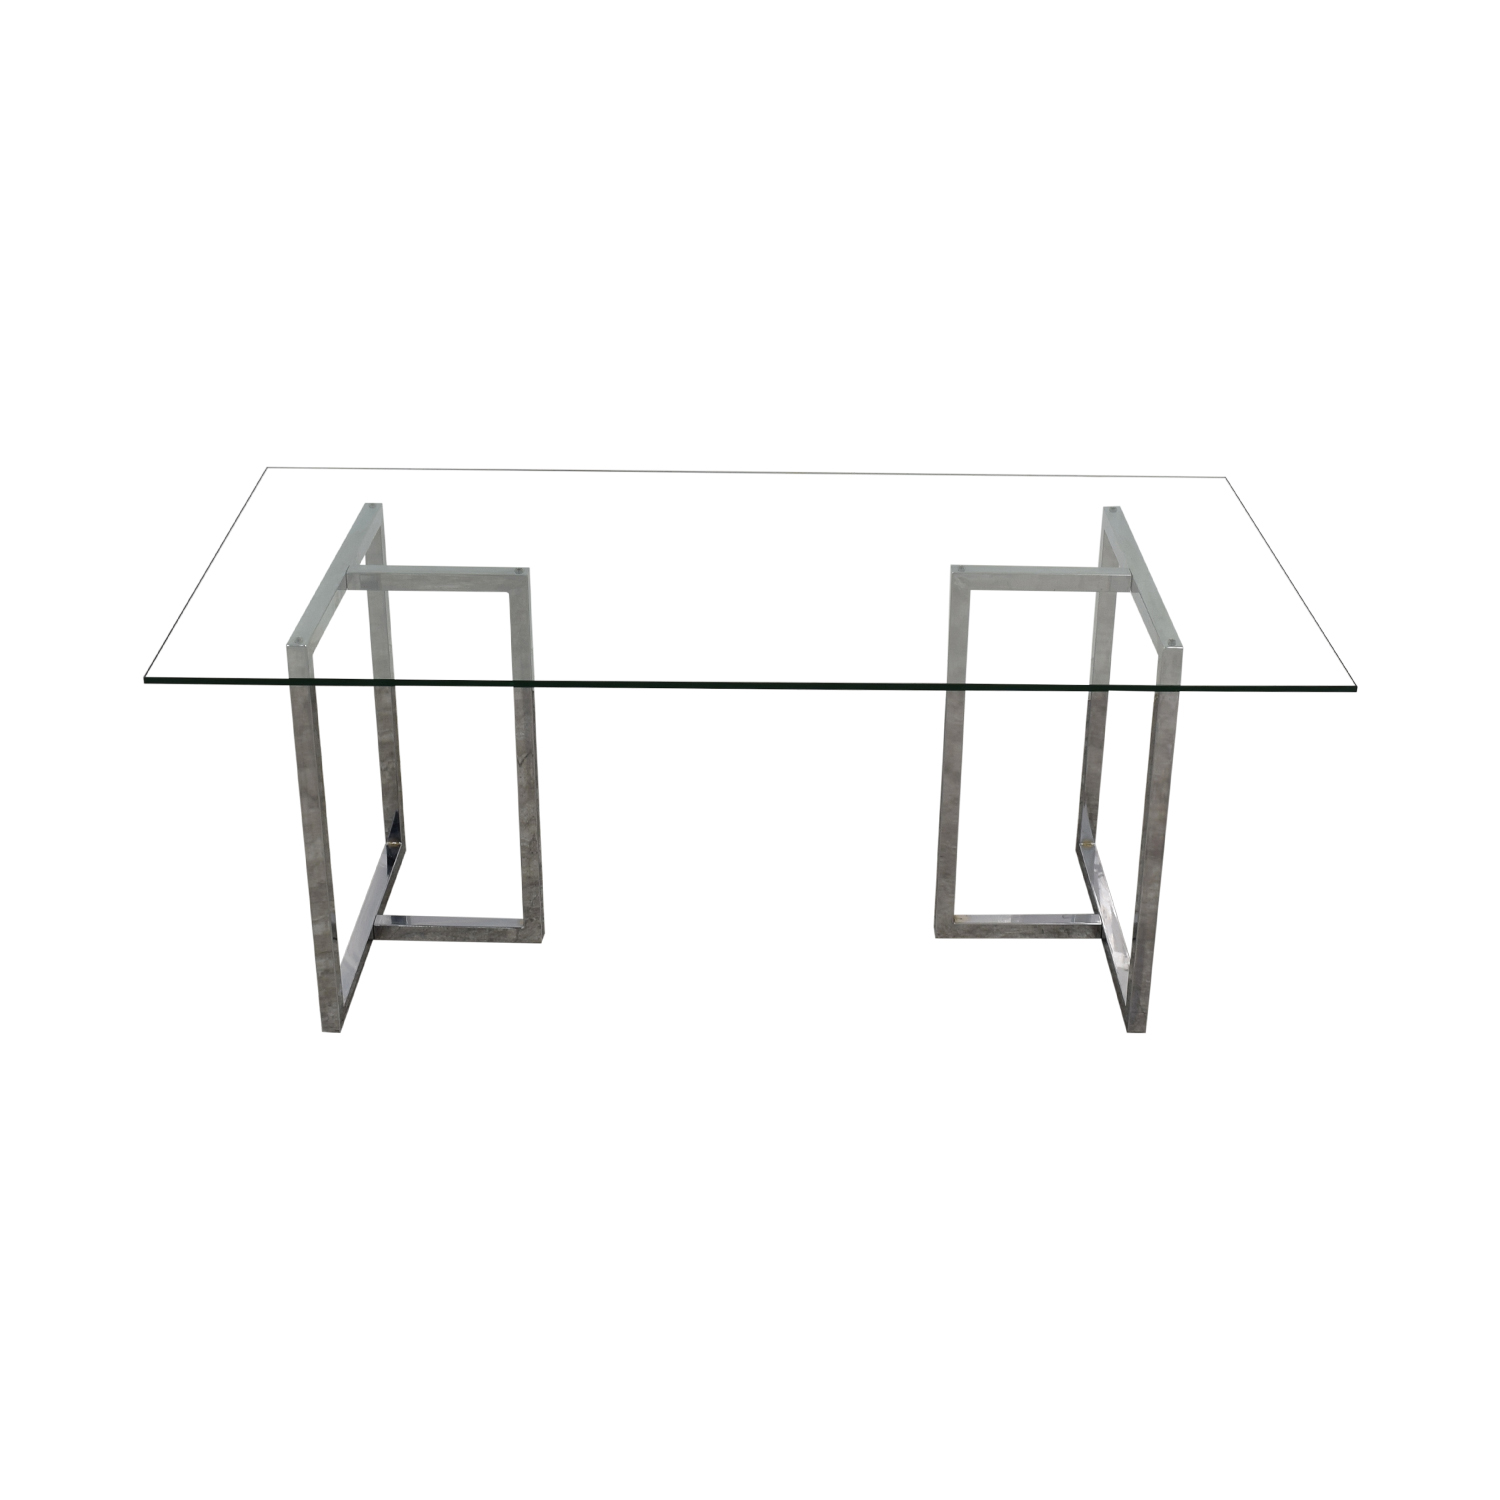 CB2 CB2 Glass and Chrome Table price